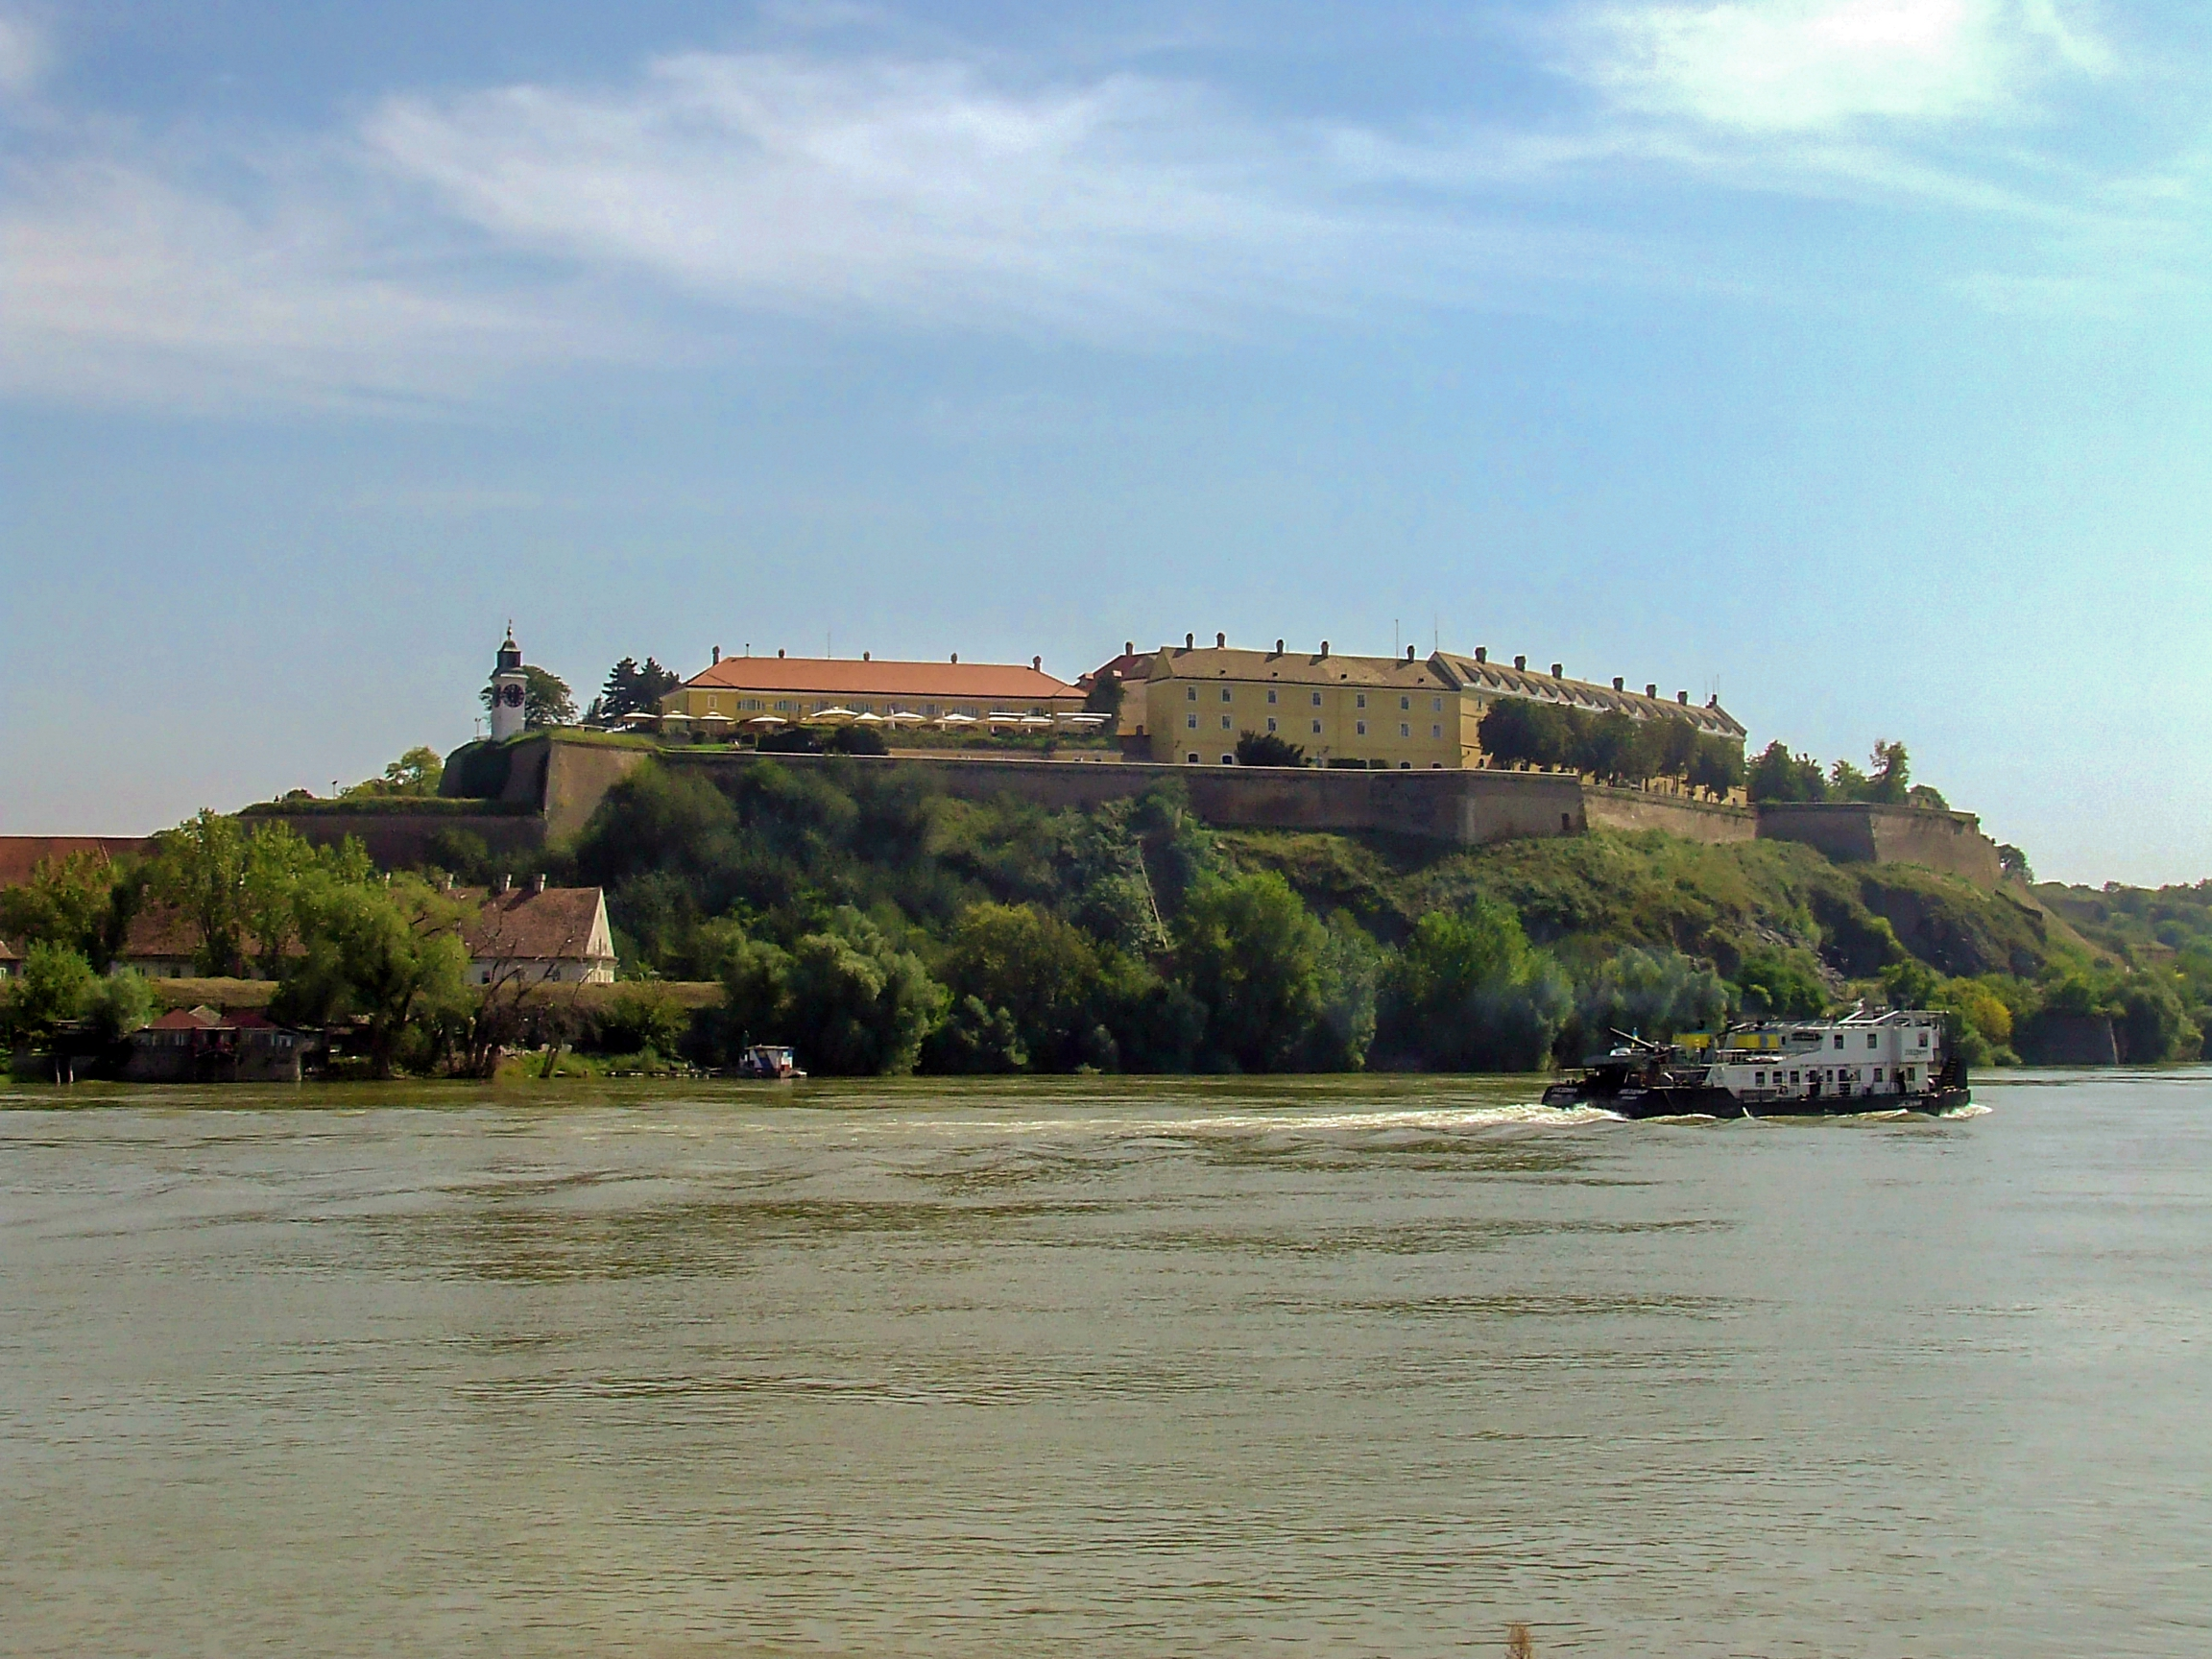 Petrovaradin Fortress, Novi Sad, Serbia - the Second Largest Fortress in Europe